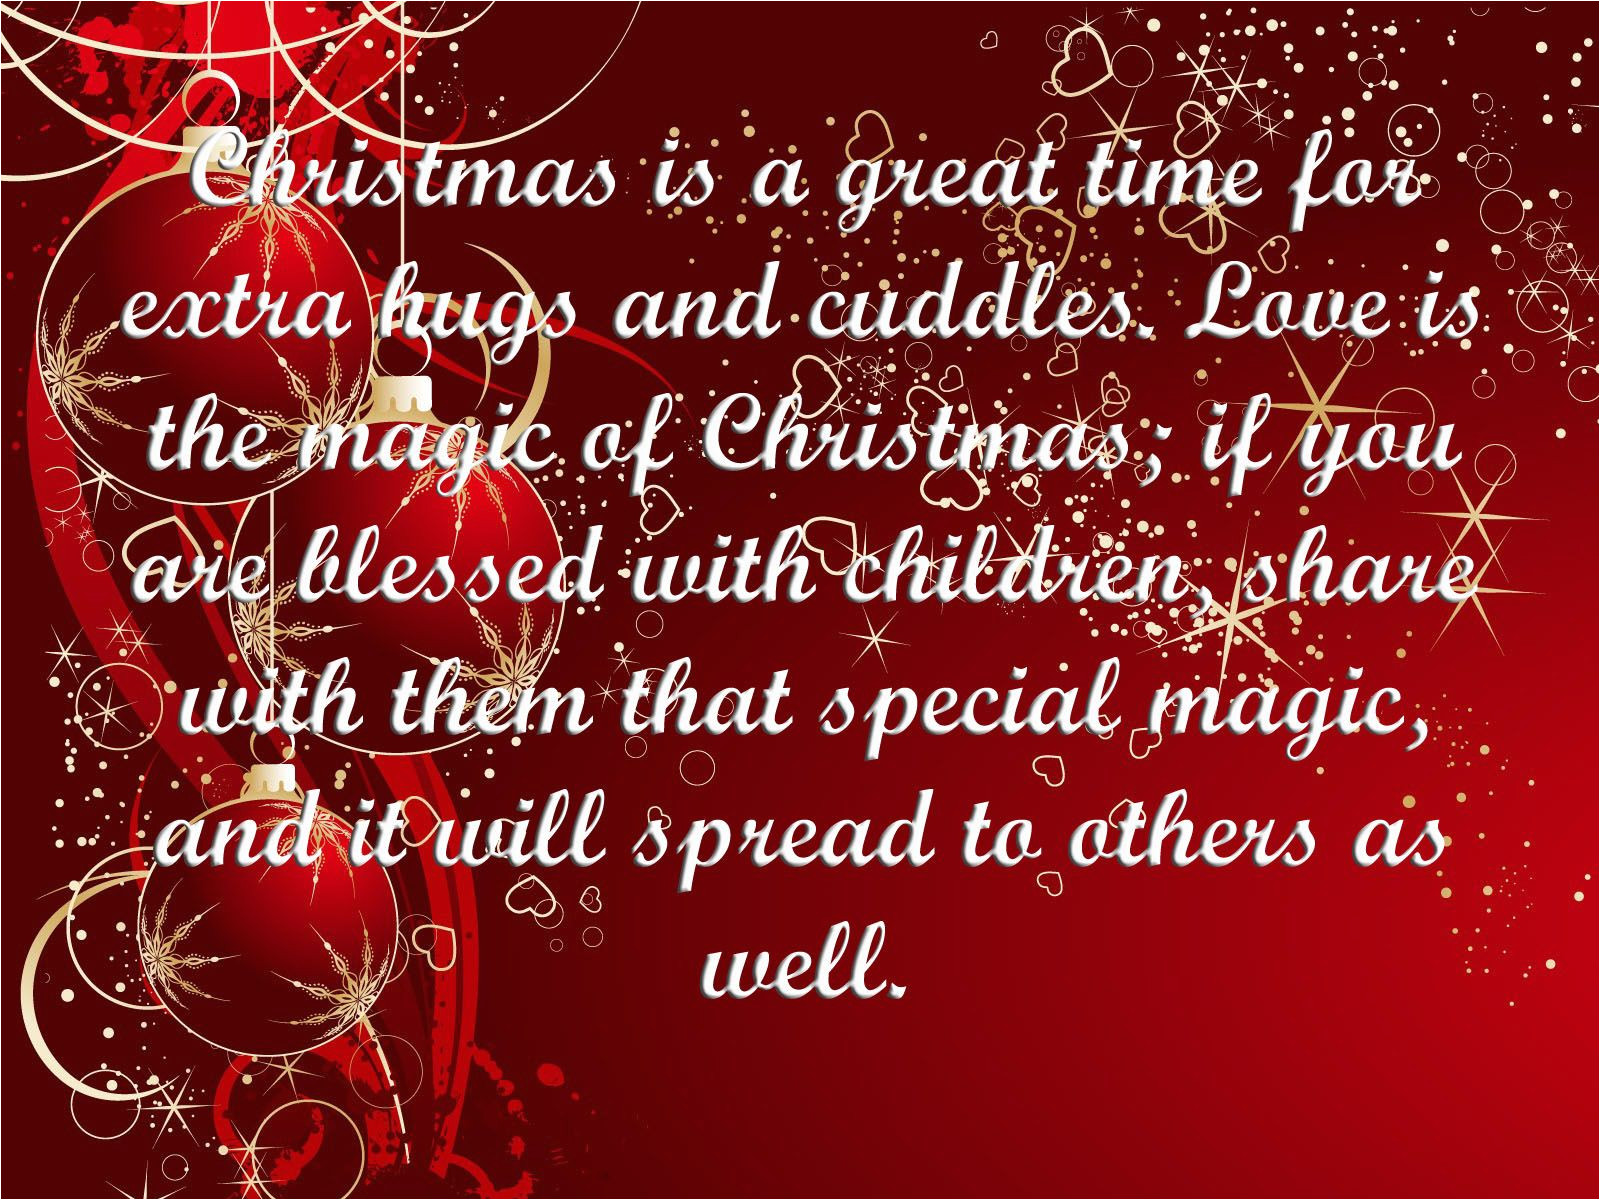 Christmas Religious Greetings Messages for Card Elegant Christmas Message Quotes and Greetings Best